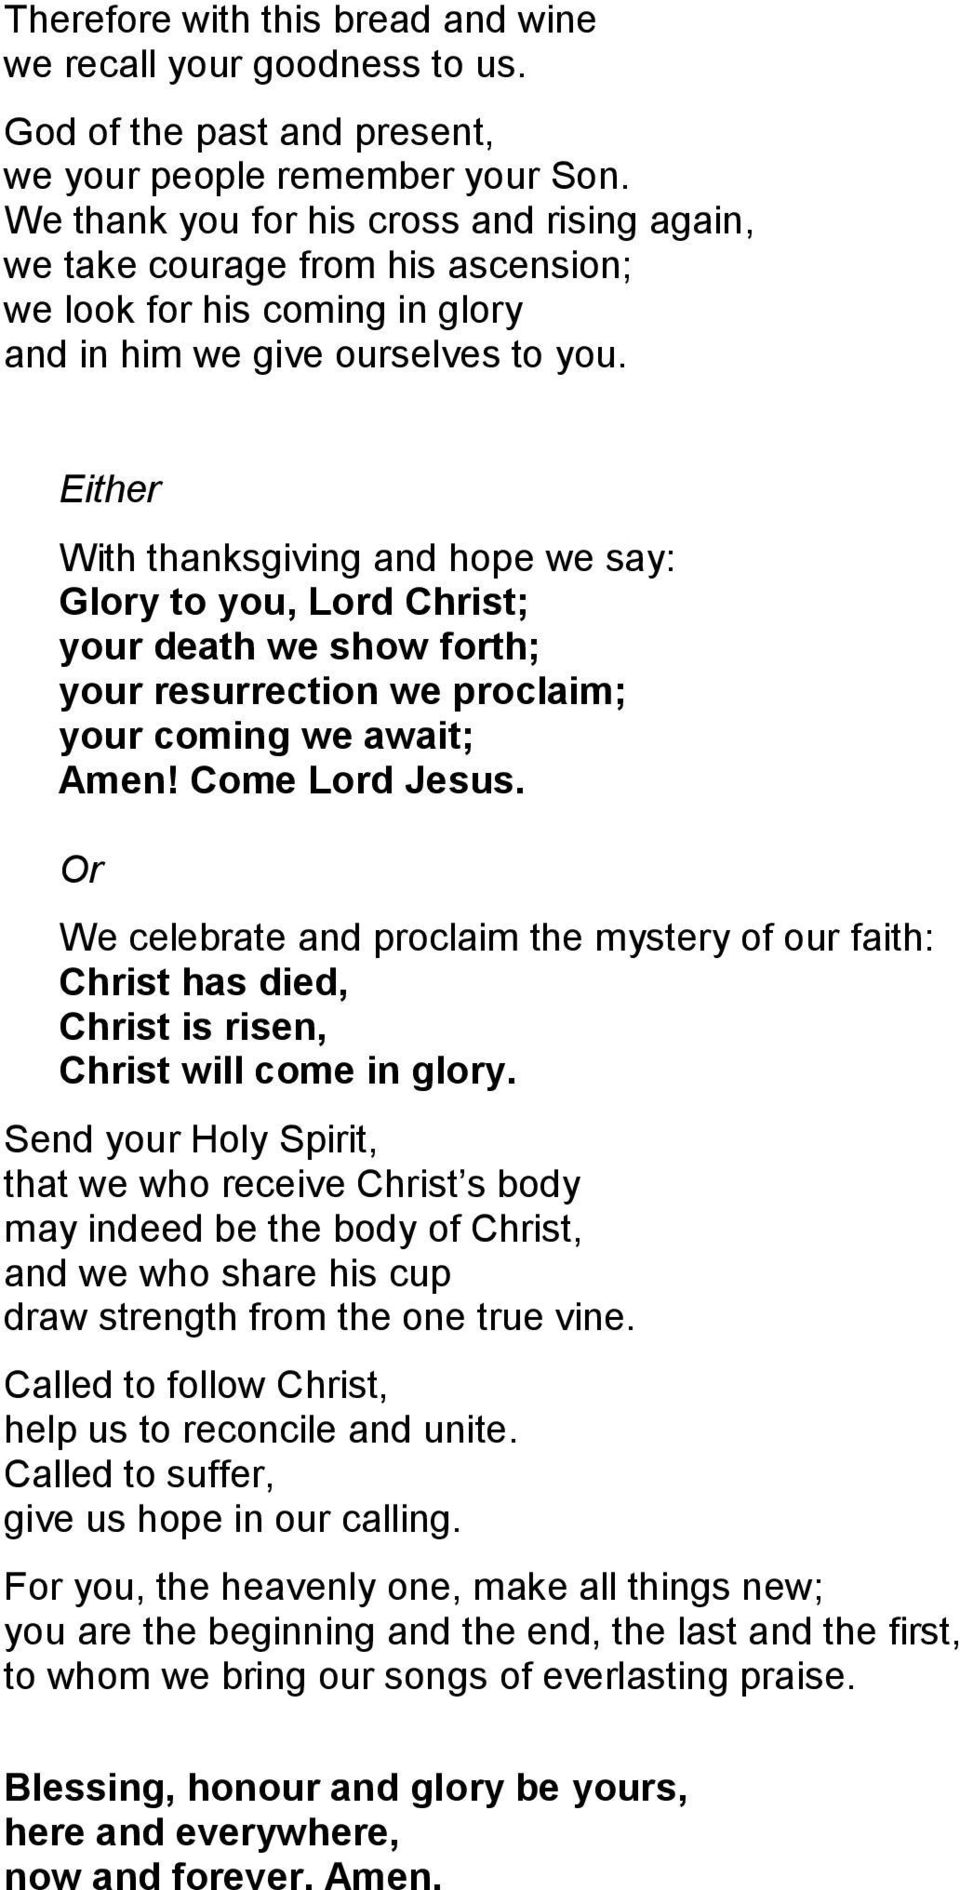 Either With thanksgiving and hope we say: Glory to you, Lord Christ; your death we show forth; your resurrection we proclaim; your coming we await; Amen! Come Lord Jesus.